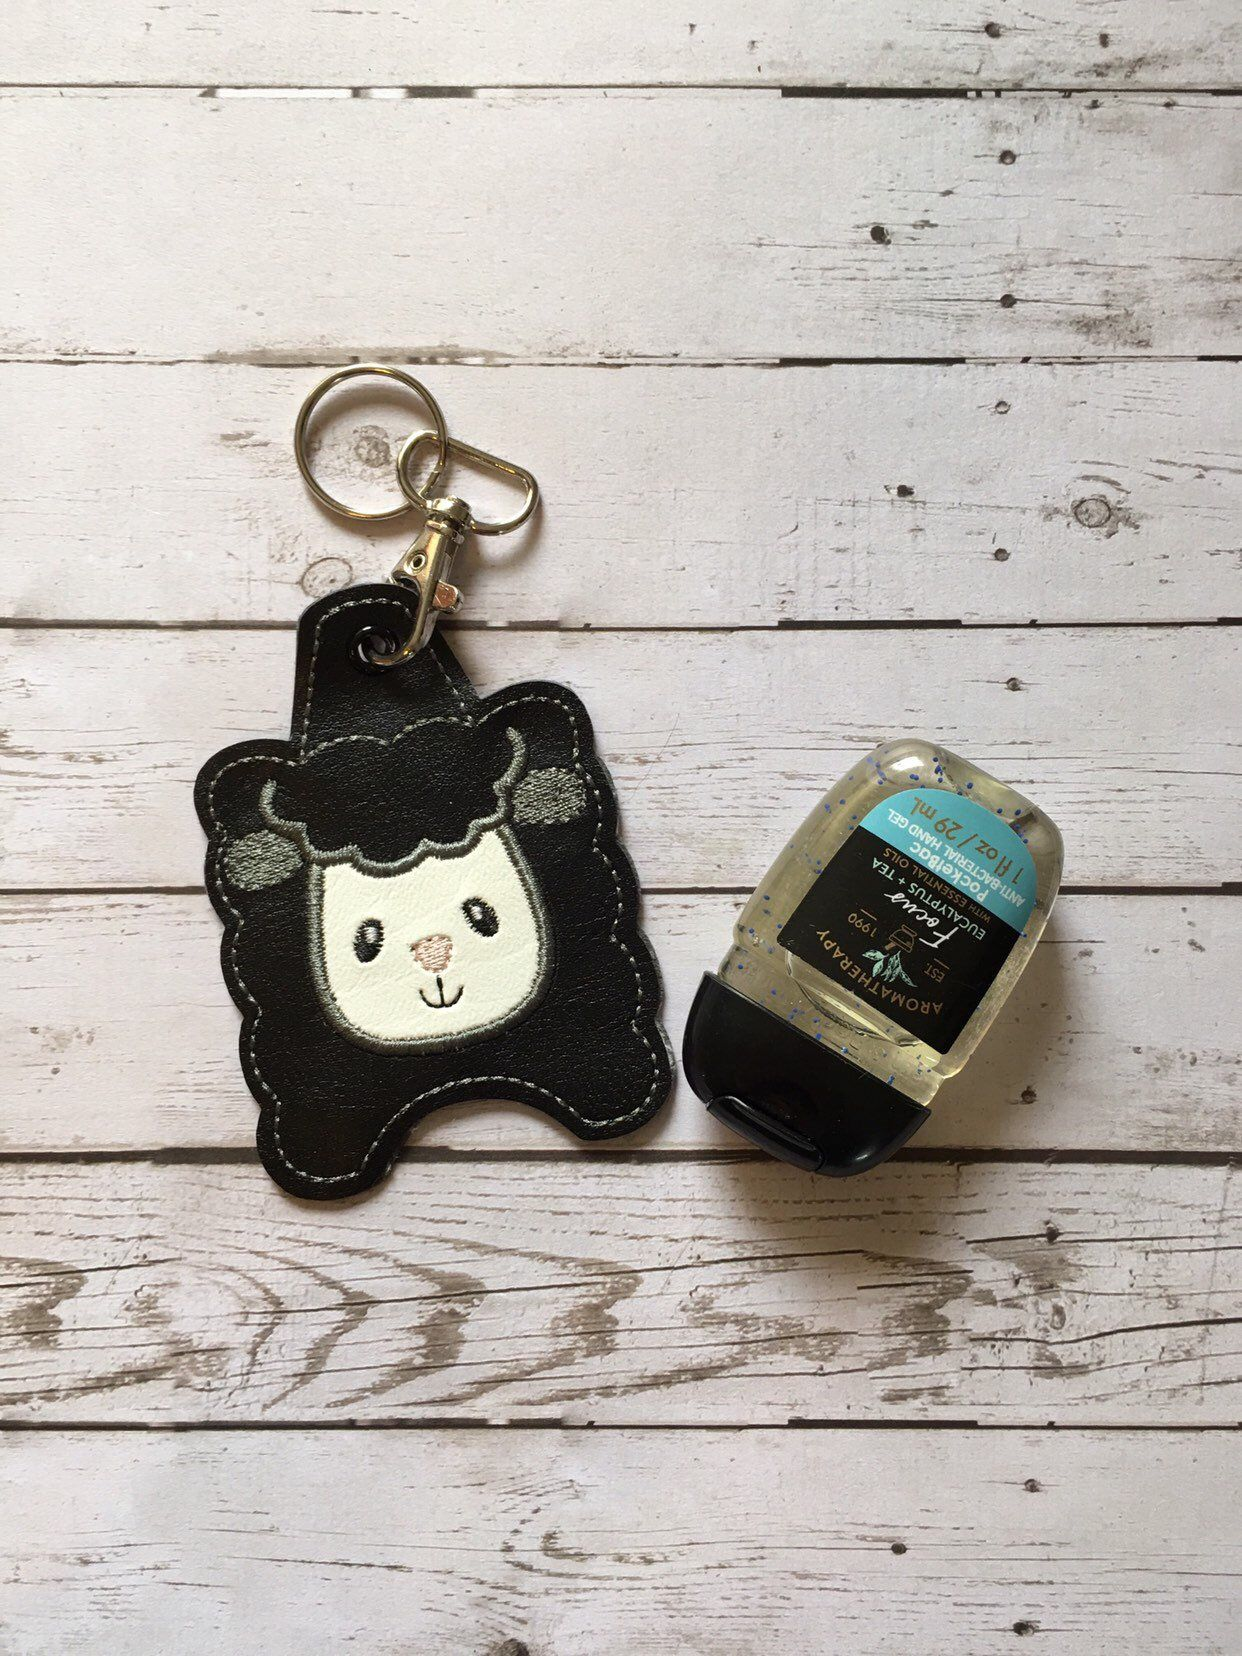 Sheep Hand Sanitizer Holder Keychain 1 Ounce Sanitizer Holder